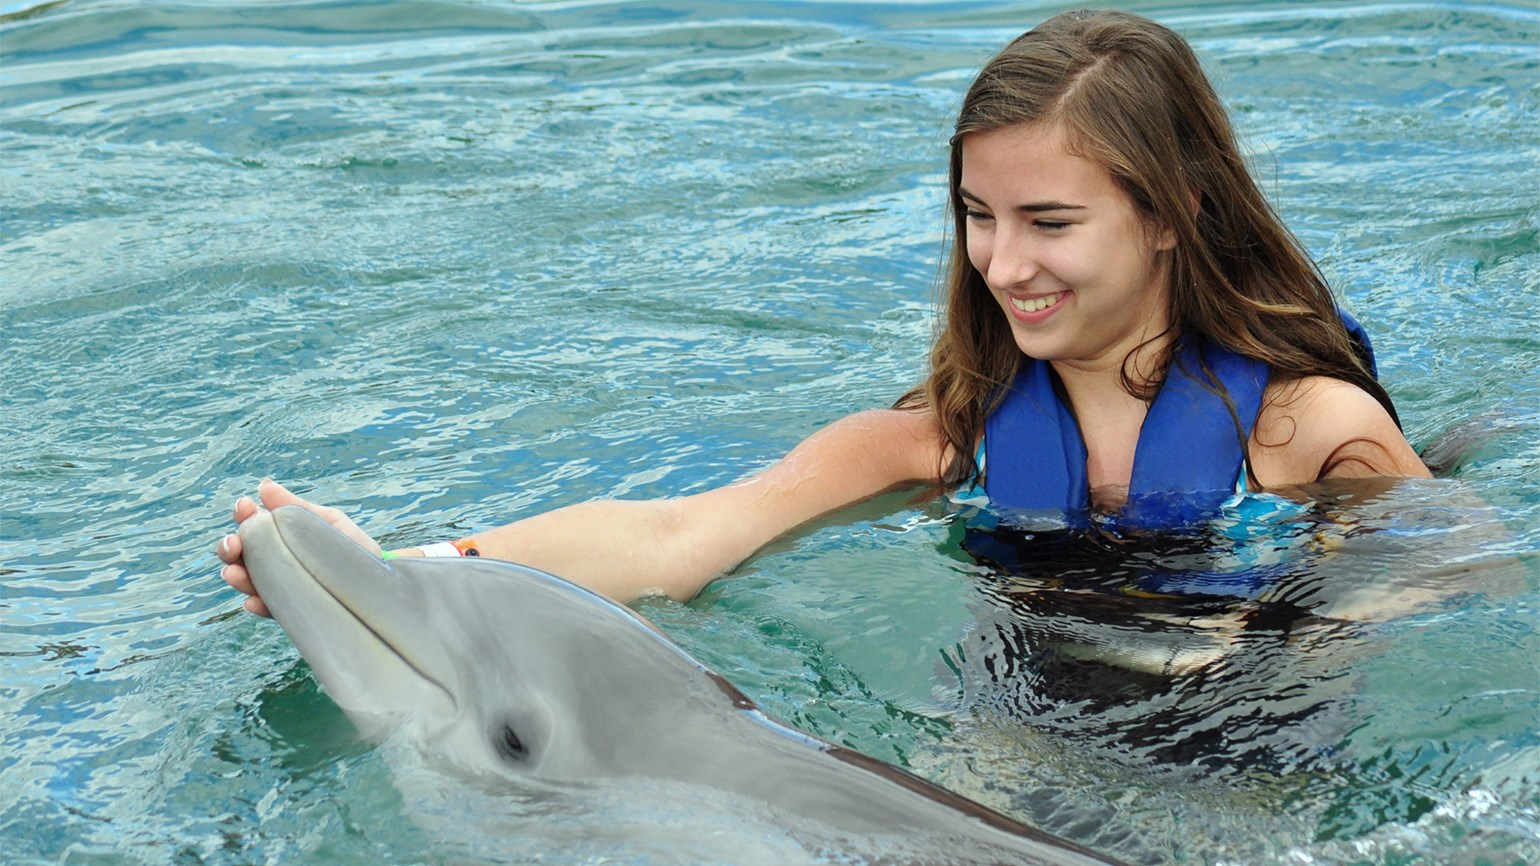 TripAdvisor stops selling many animal attractions, including dolphin swims